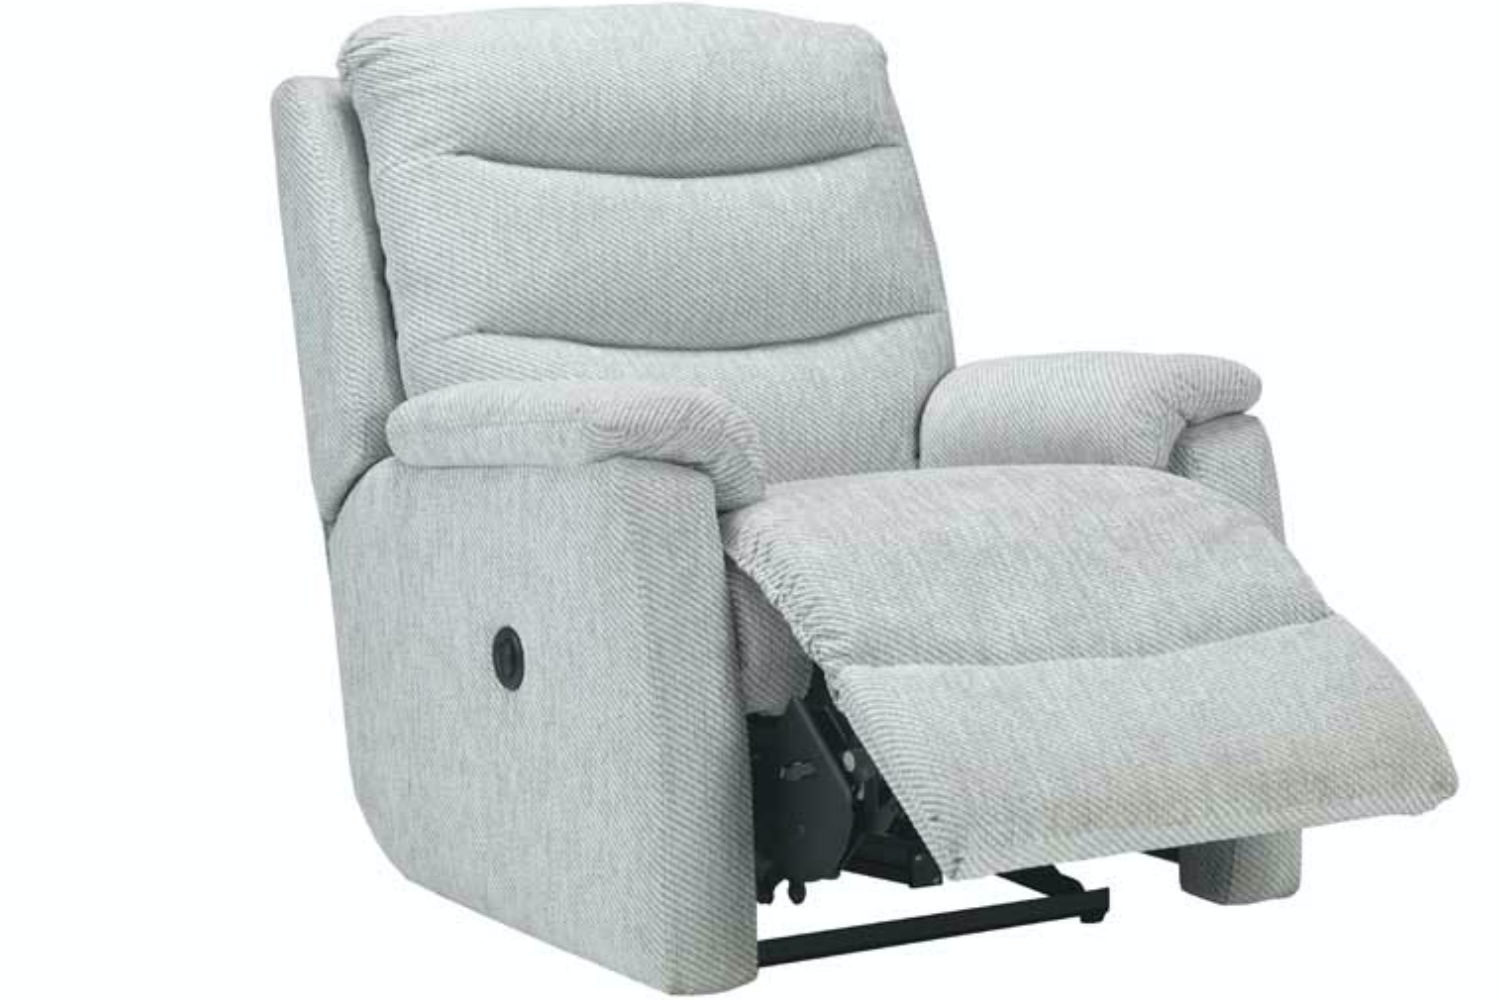 Madora Electric Recliner Armchair